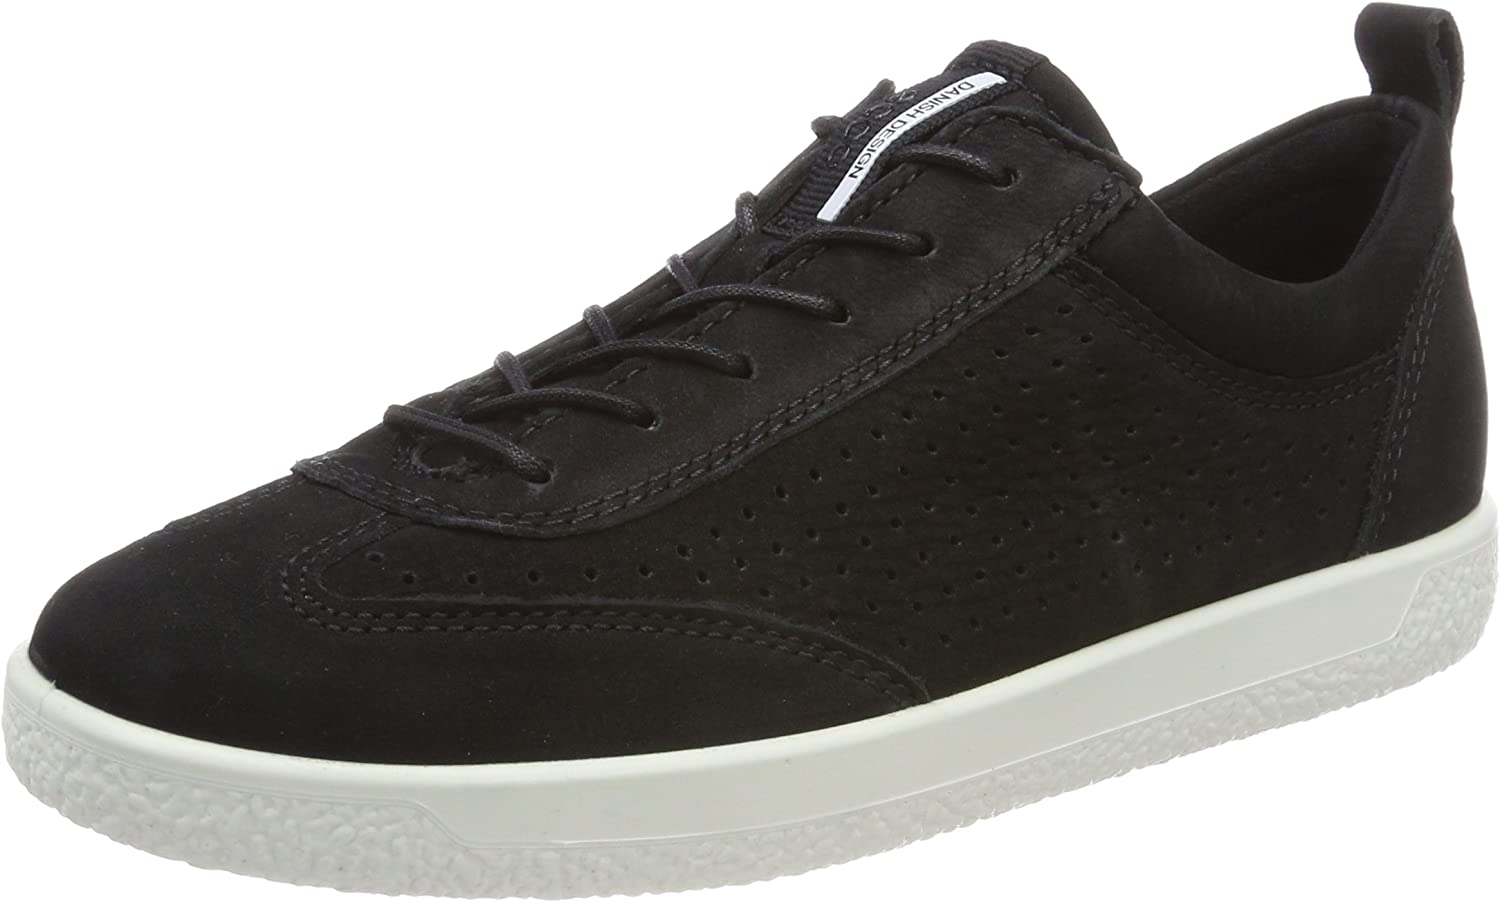 ECCO shoes Women's Soft 1 Lace Perf Fashion Sneakers